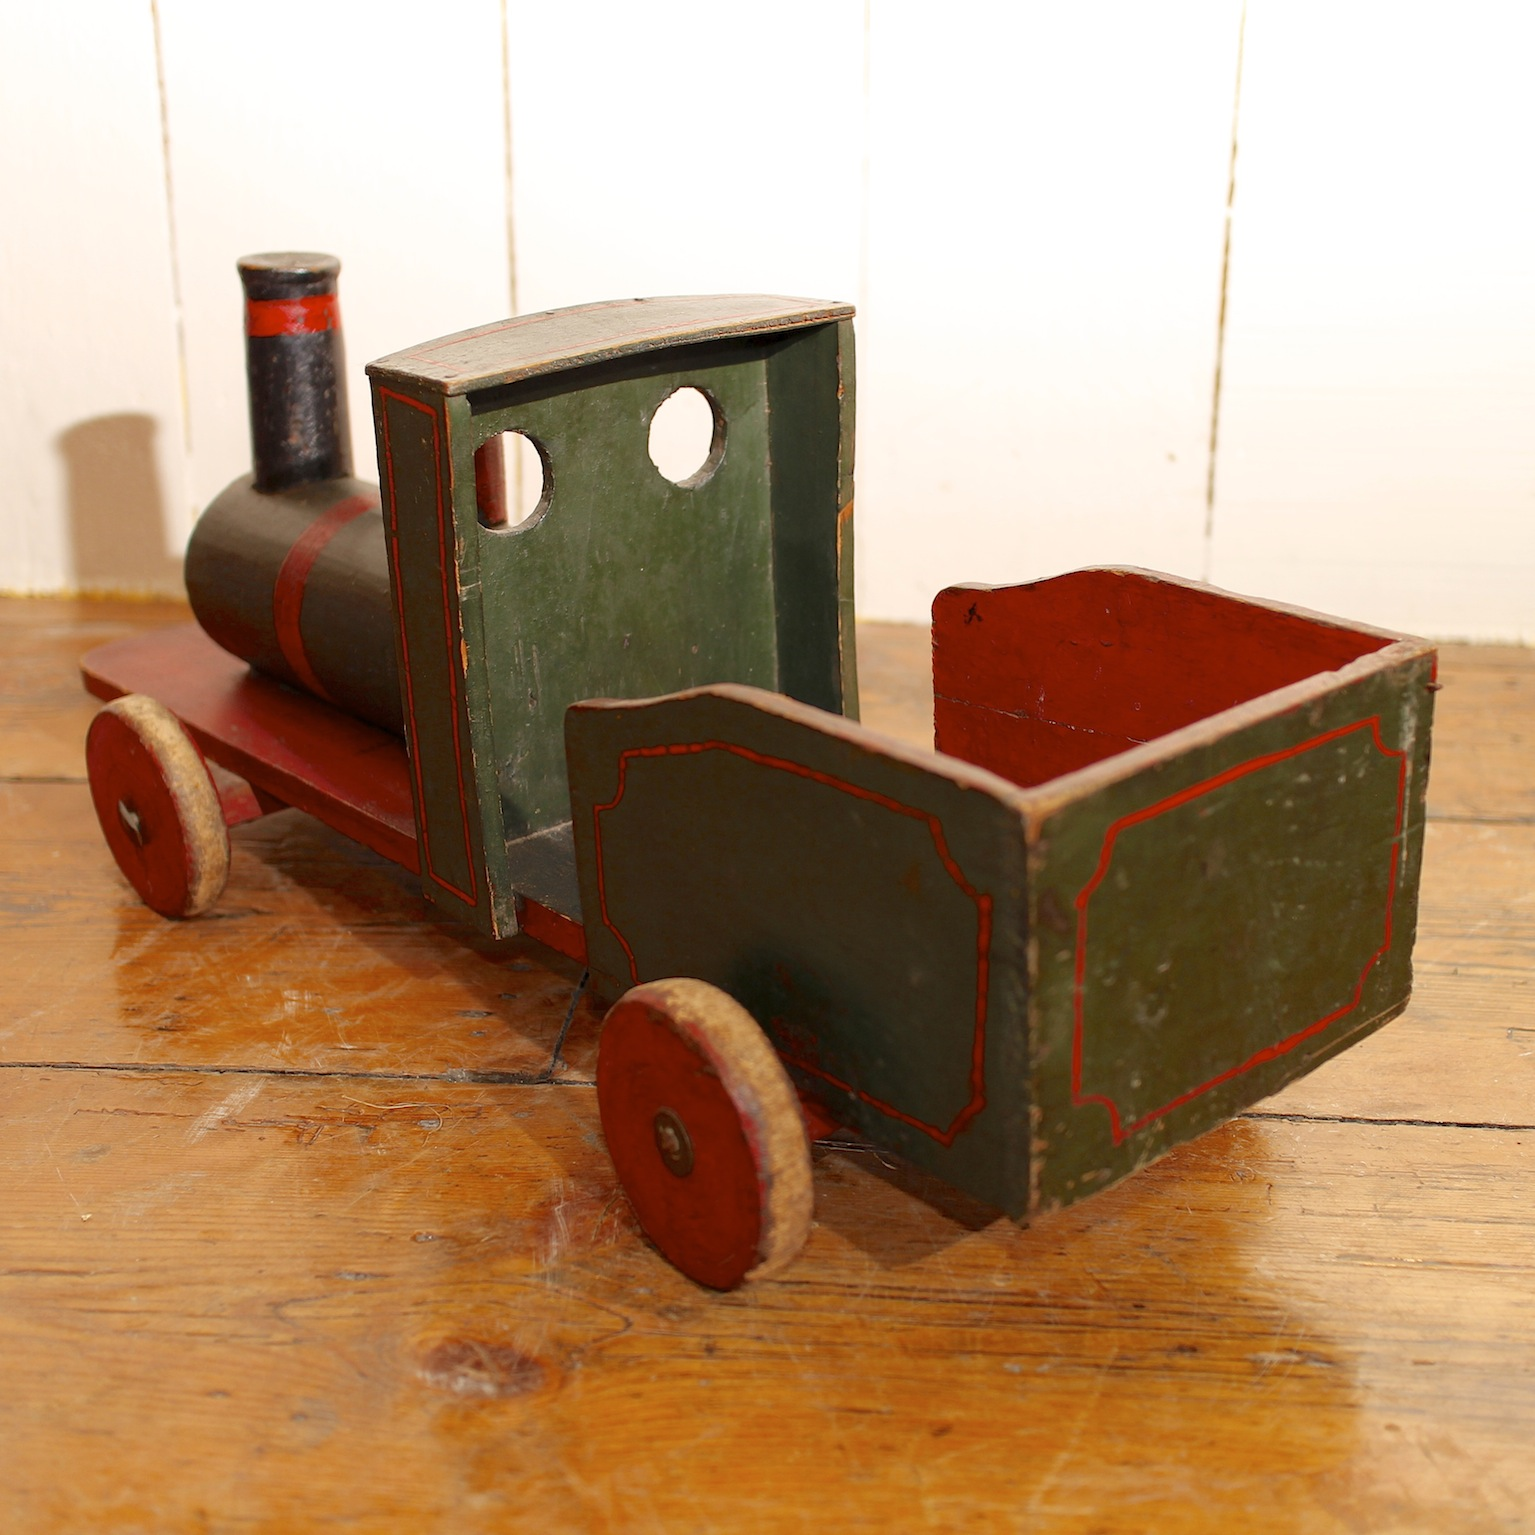 Vintage Painted Wooden English Toy Train The Hoarde